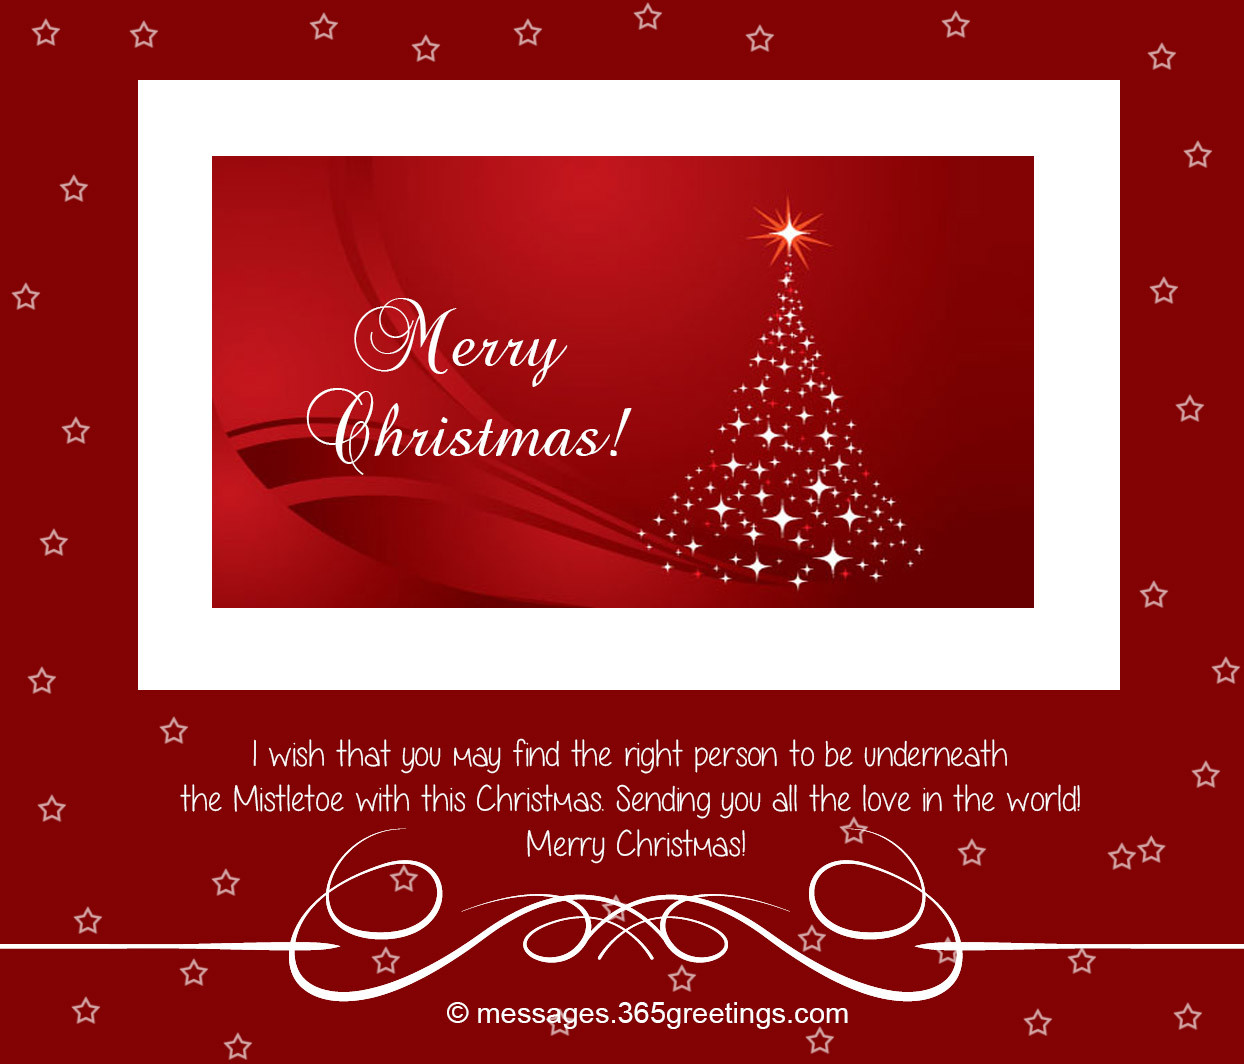 Quotes For Christmas Card  Best Christmas Card Sayings and Greetings 365greetings